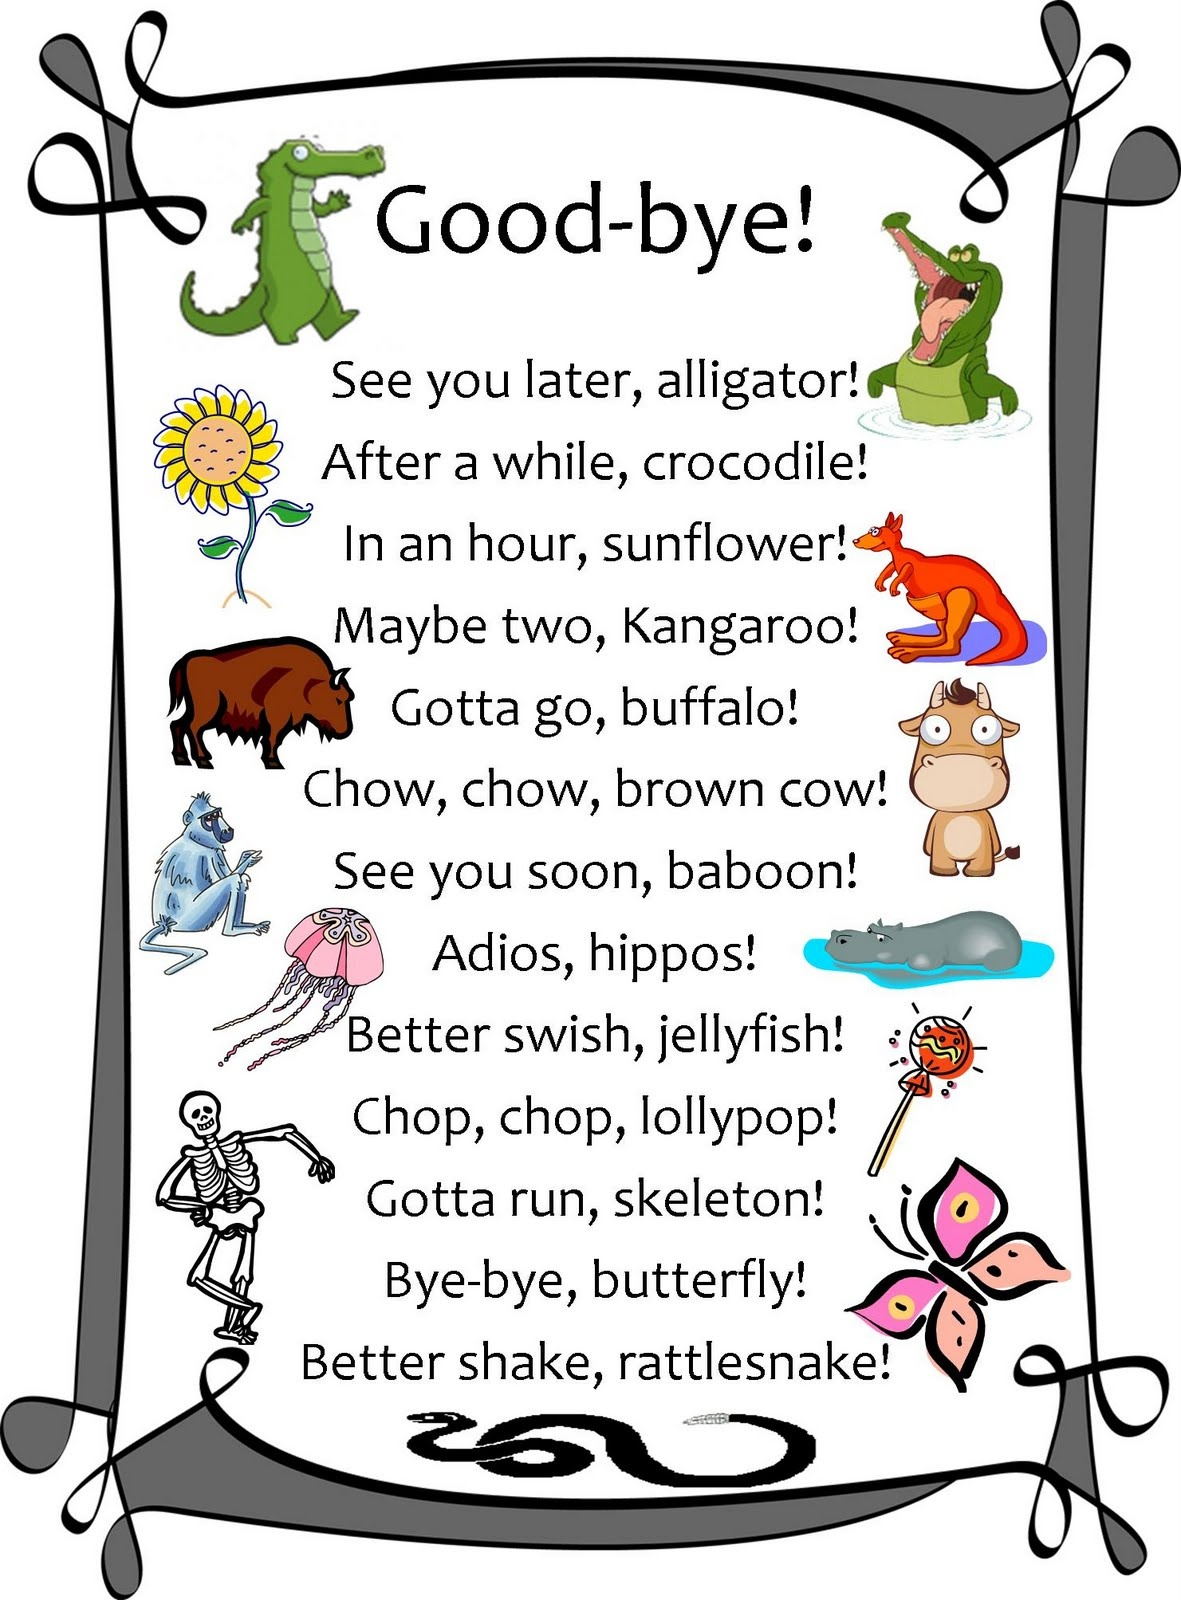 11 Best Photos Of Free Printable Farewell Cards Co-Worker - Good Bye - Free Printable Farewell Card For Coworker